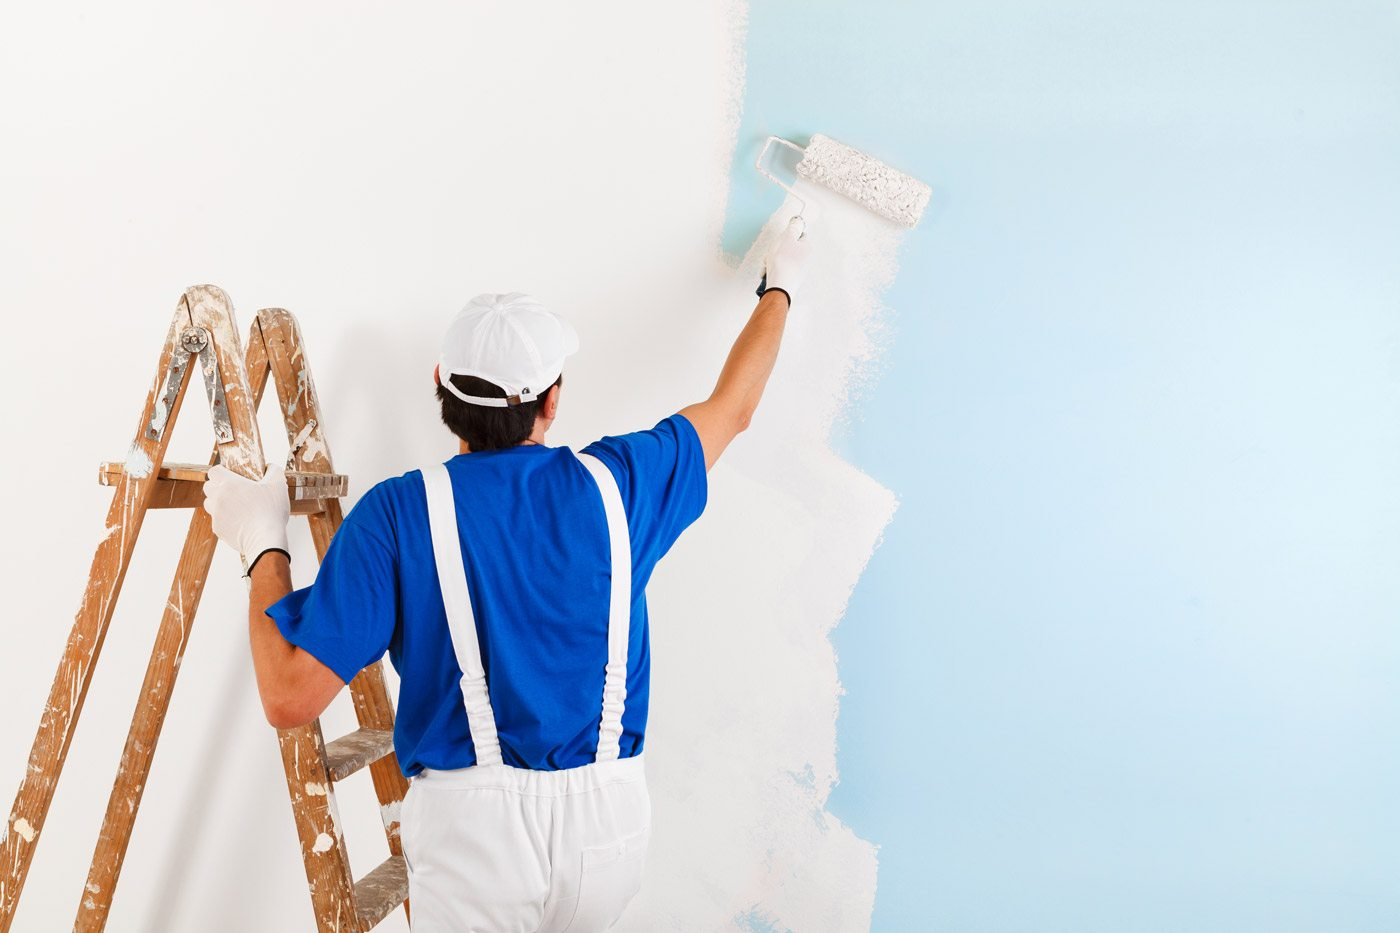 Contact Us-Wichita Falls TX Professional Painting Contractors-We offer Residential & Commercial Painting, Interior Painting, Exterior Painting, Primer Painting, Industrial Painting, Professional Painters, Institutional Painters, and more.